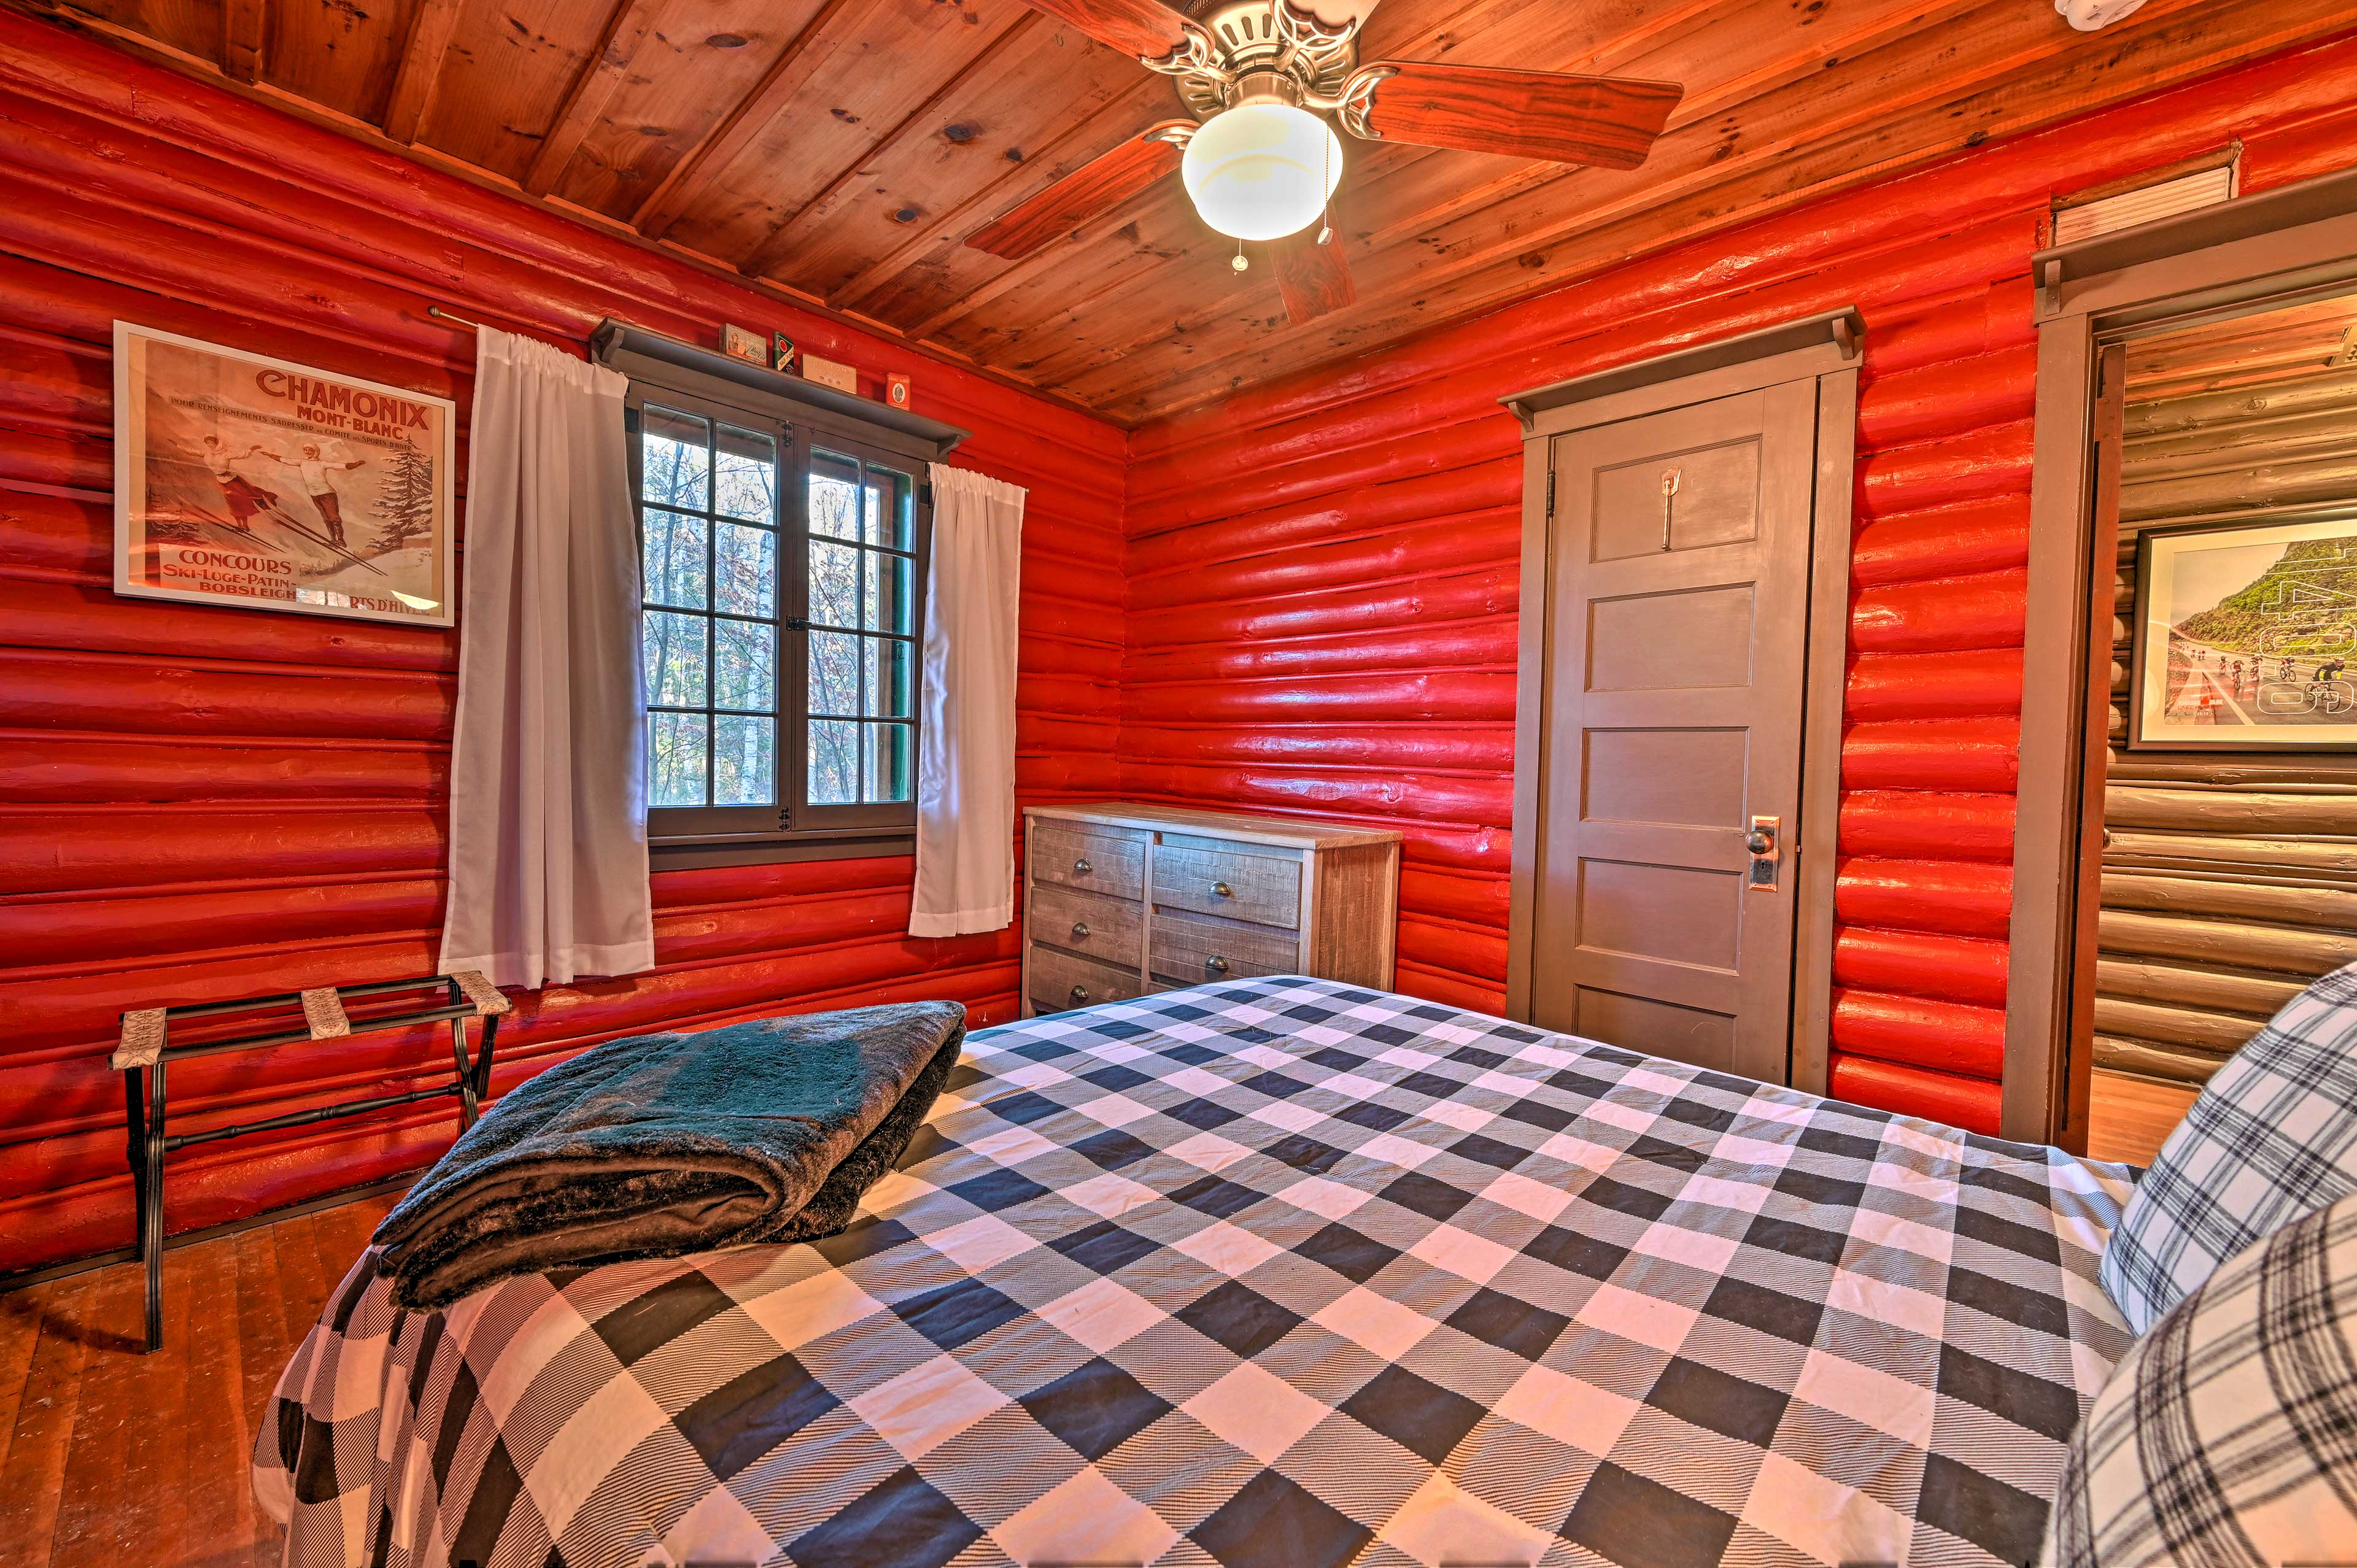 The room is complete with a cozy queen-sized bed.